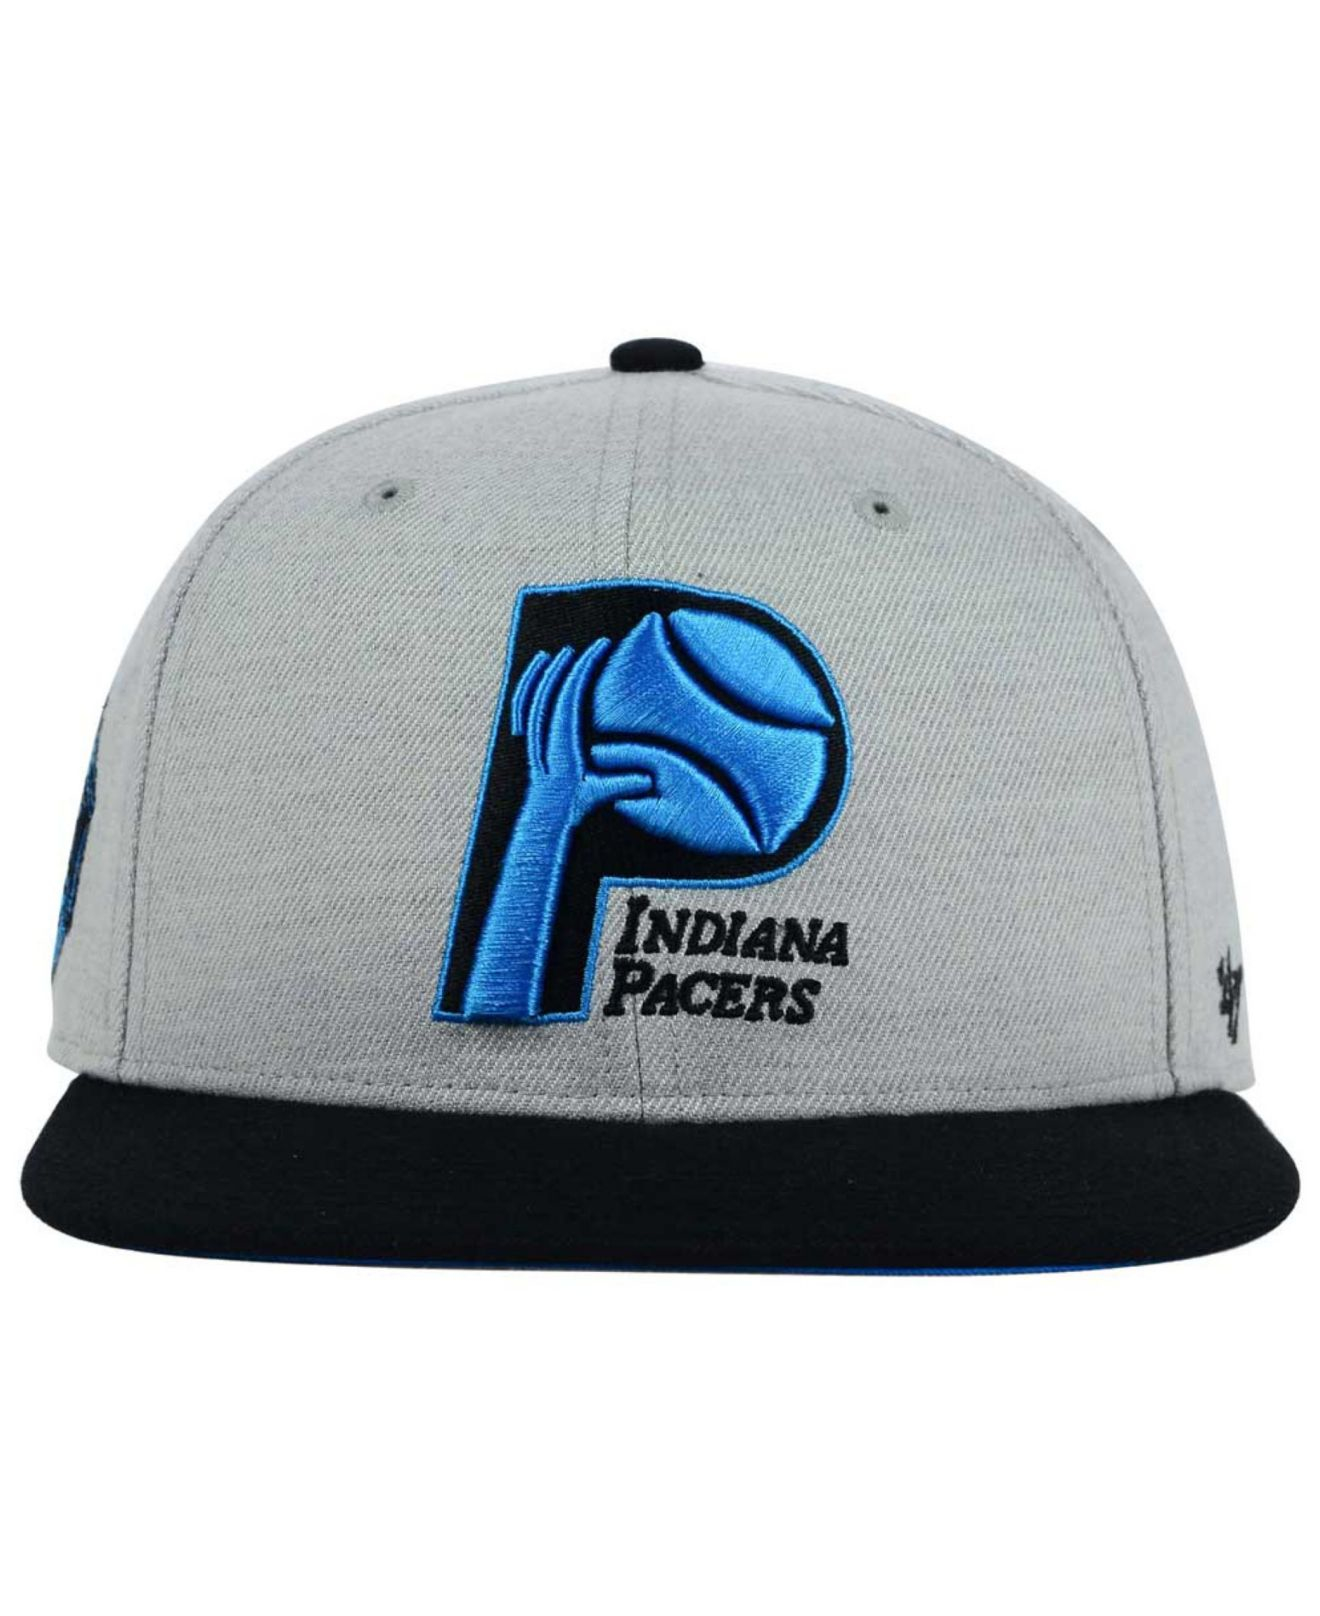 new products 7a263 2644f Lyst - 47 Brand Indiana Pacers Wrist Shot Snapback Cap in Gray for Men